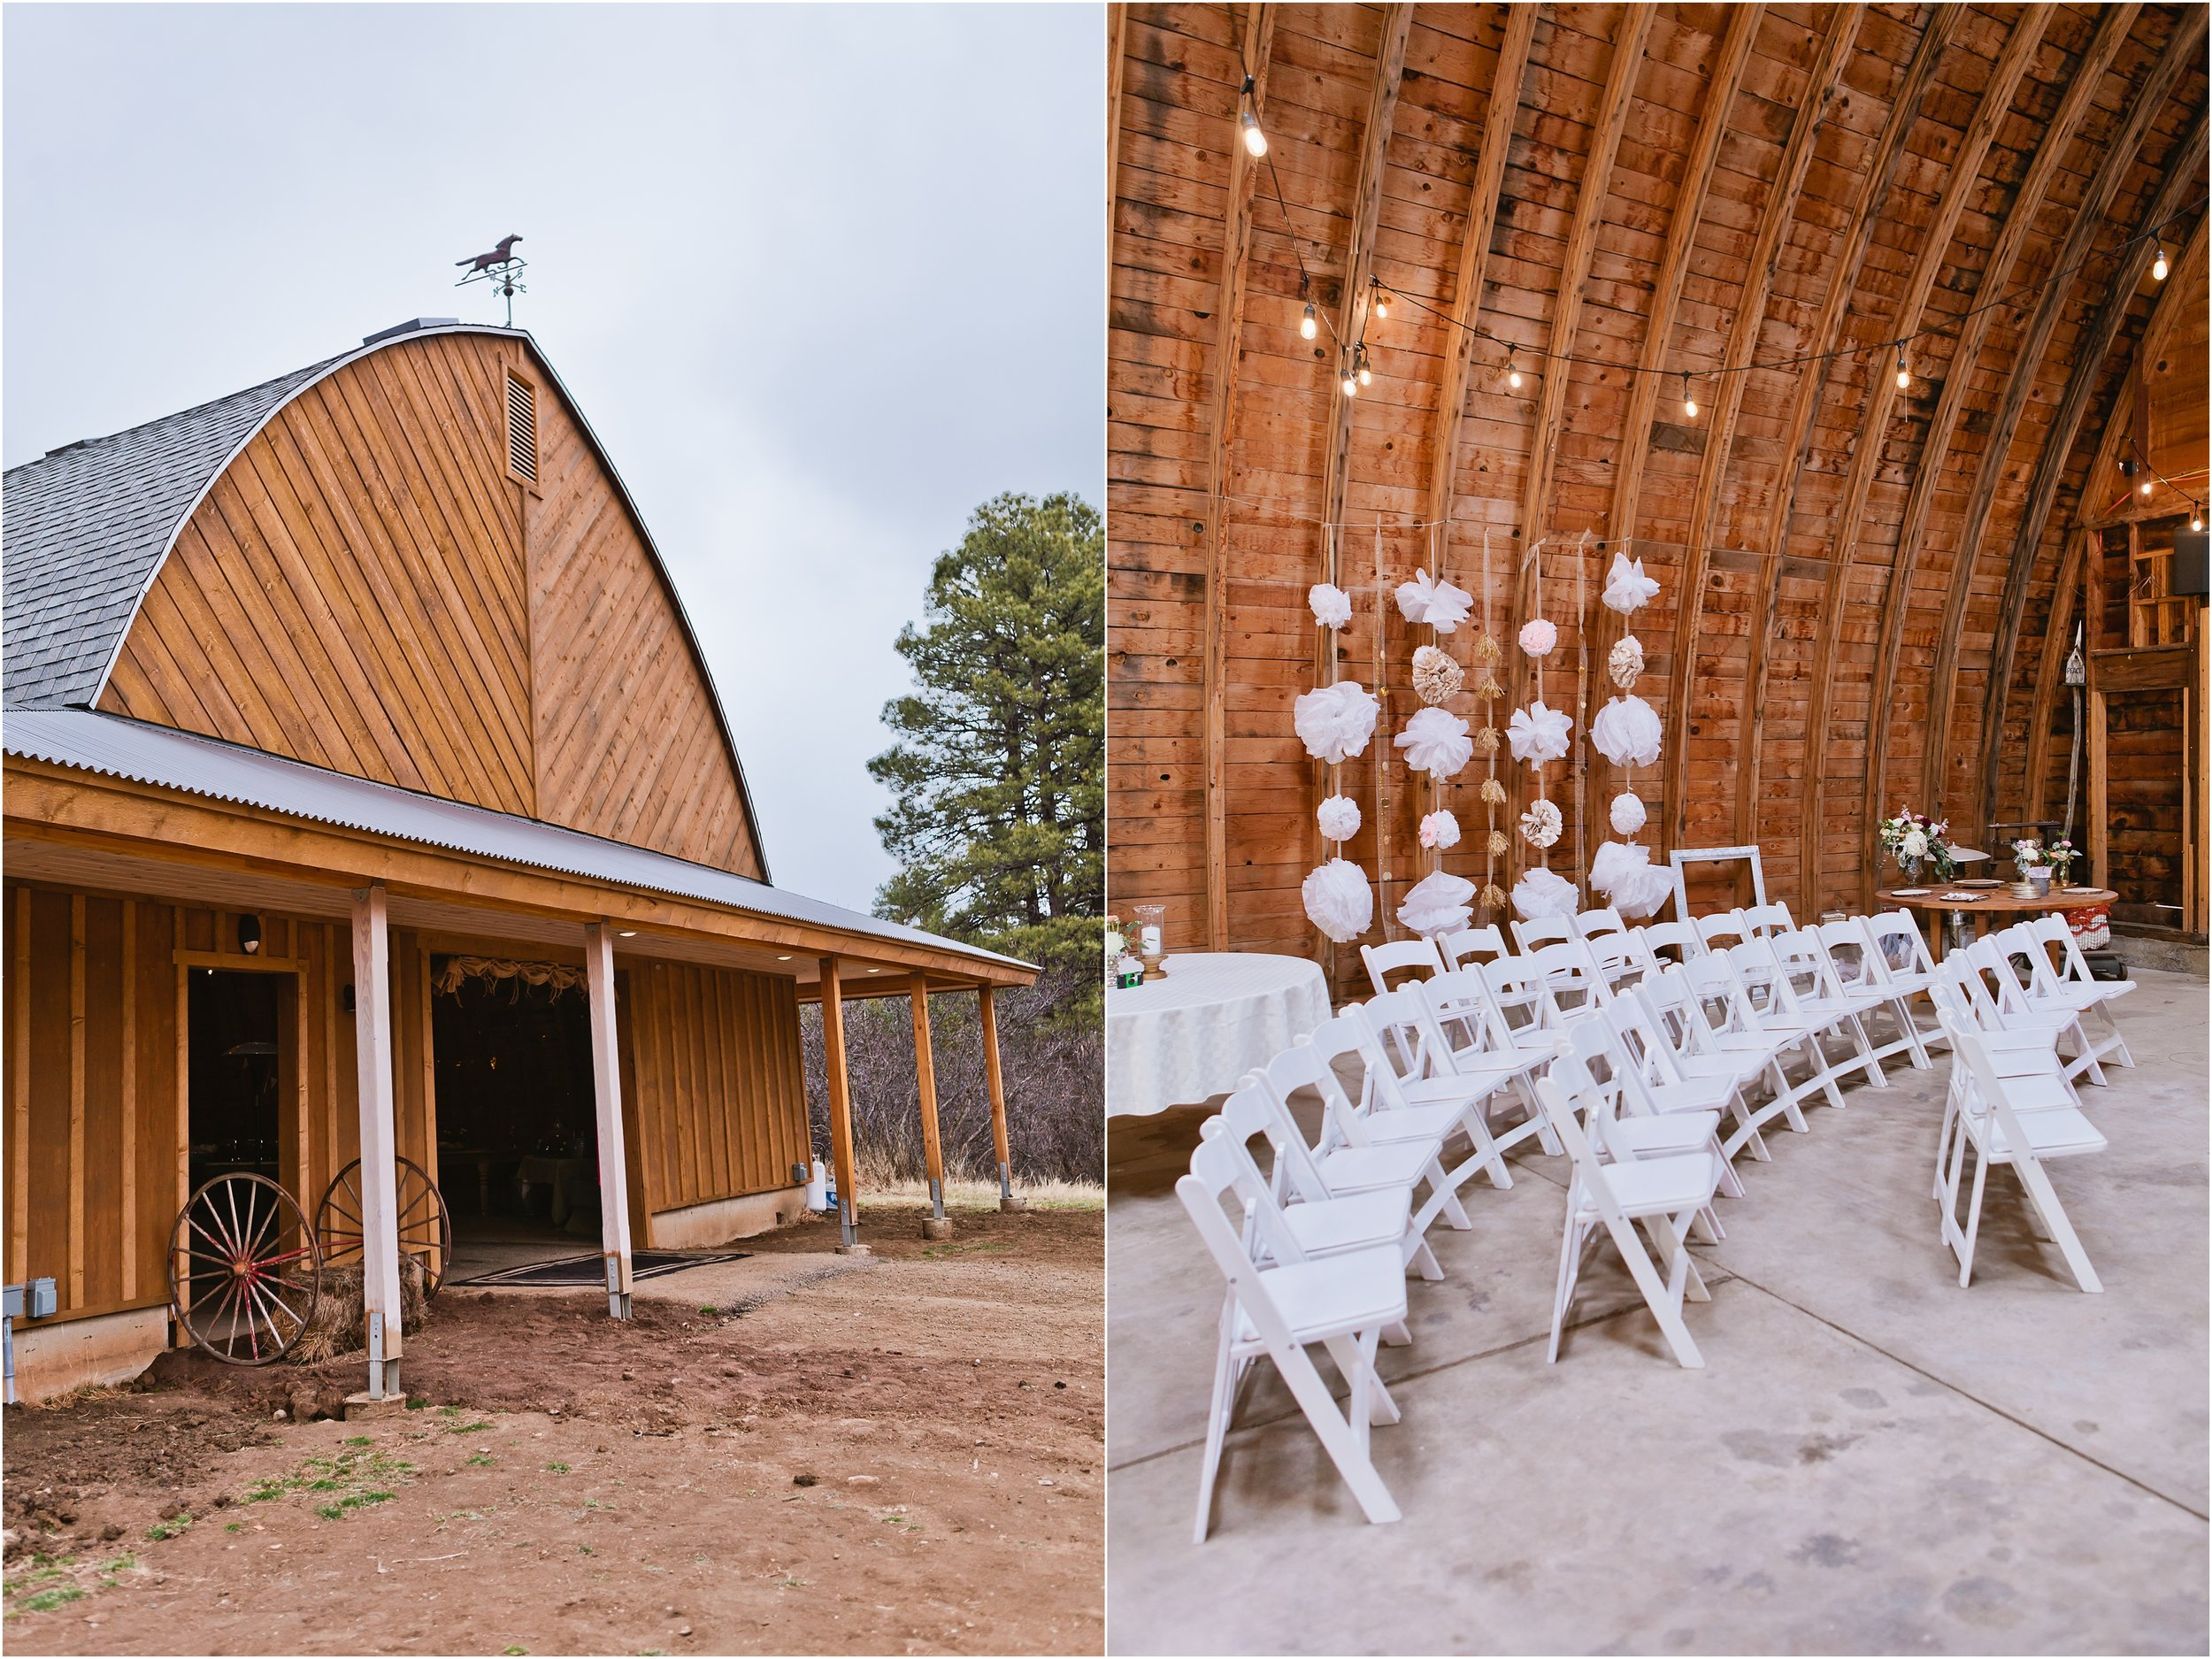 durango-wedding-venue-barn.jpg